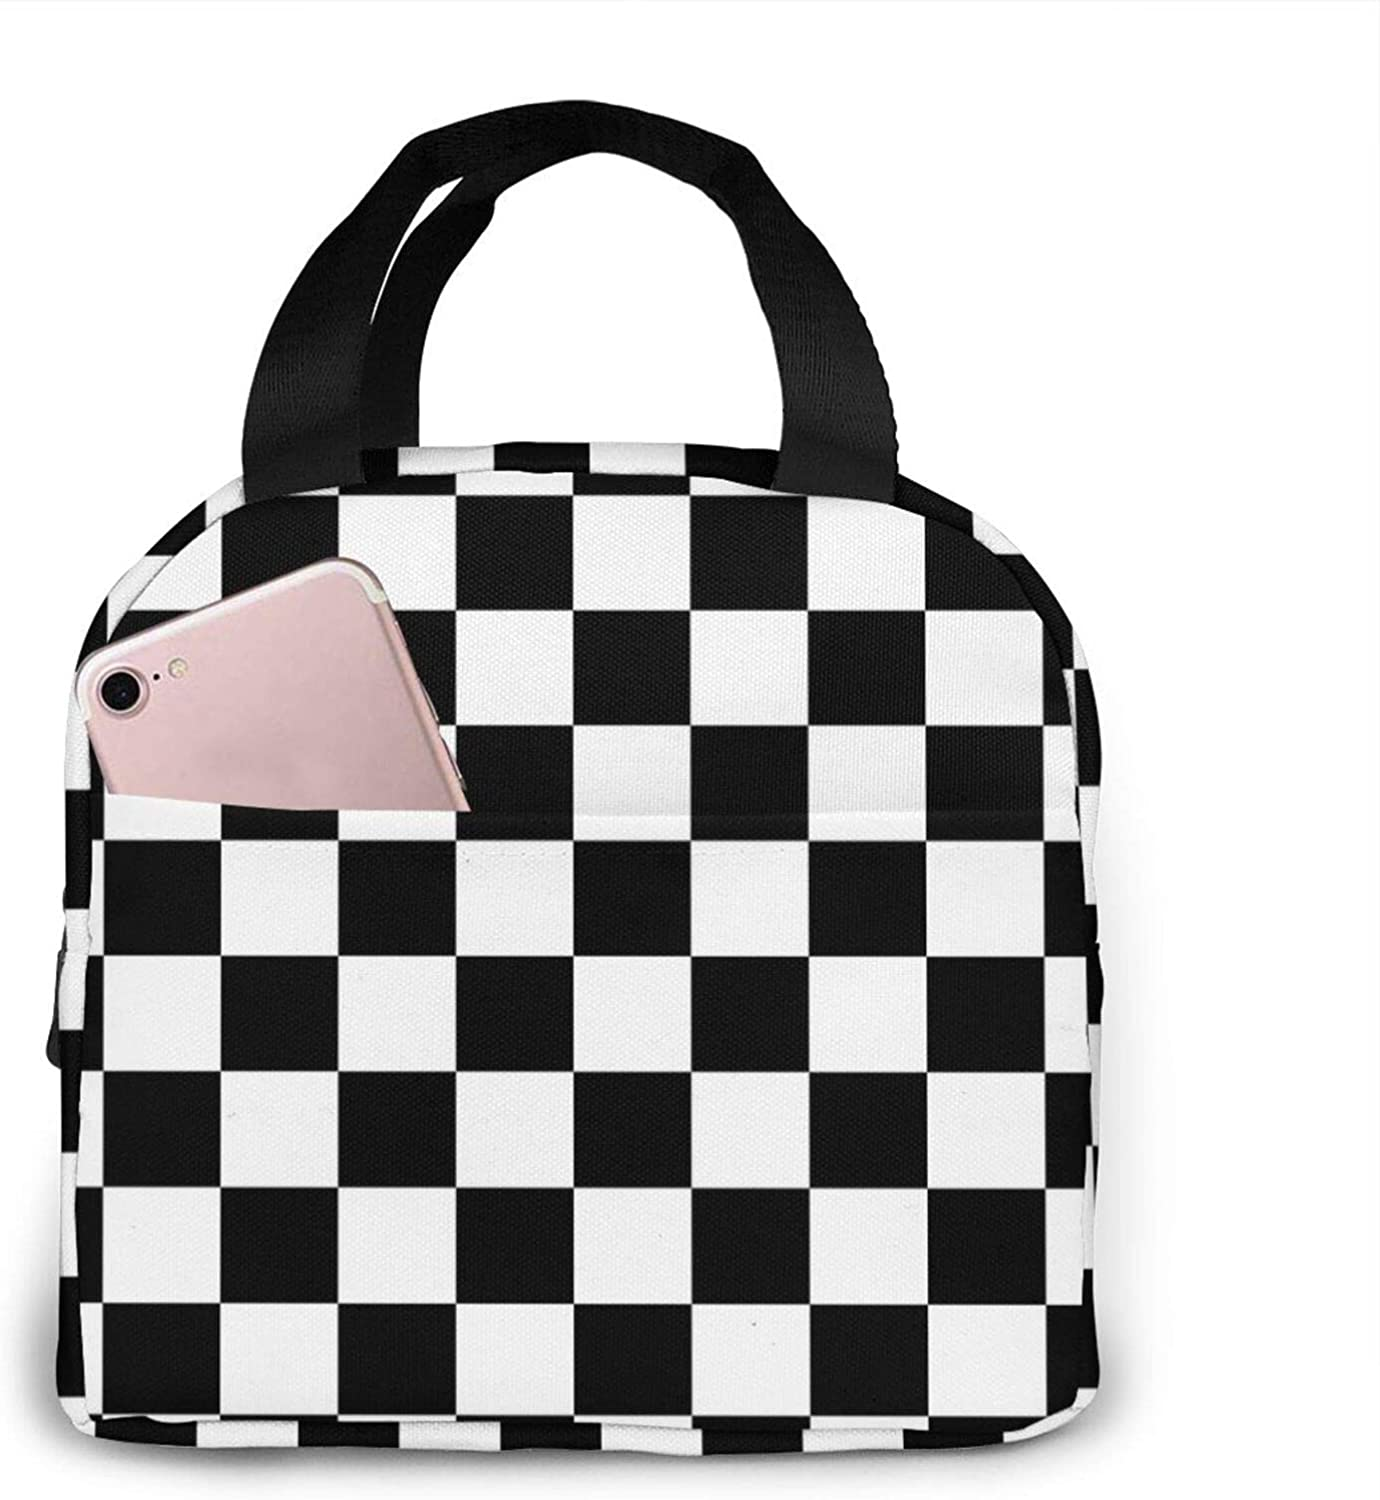 Checker Board Lunch Bag For Women Insulated Lunch Box Reusable Cooler Tote Bag For Work Picnic Travel